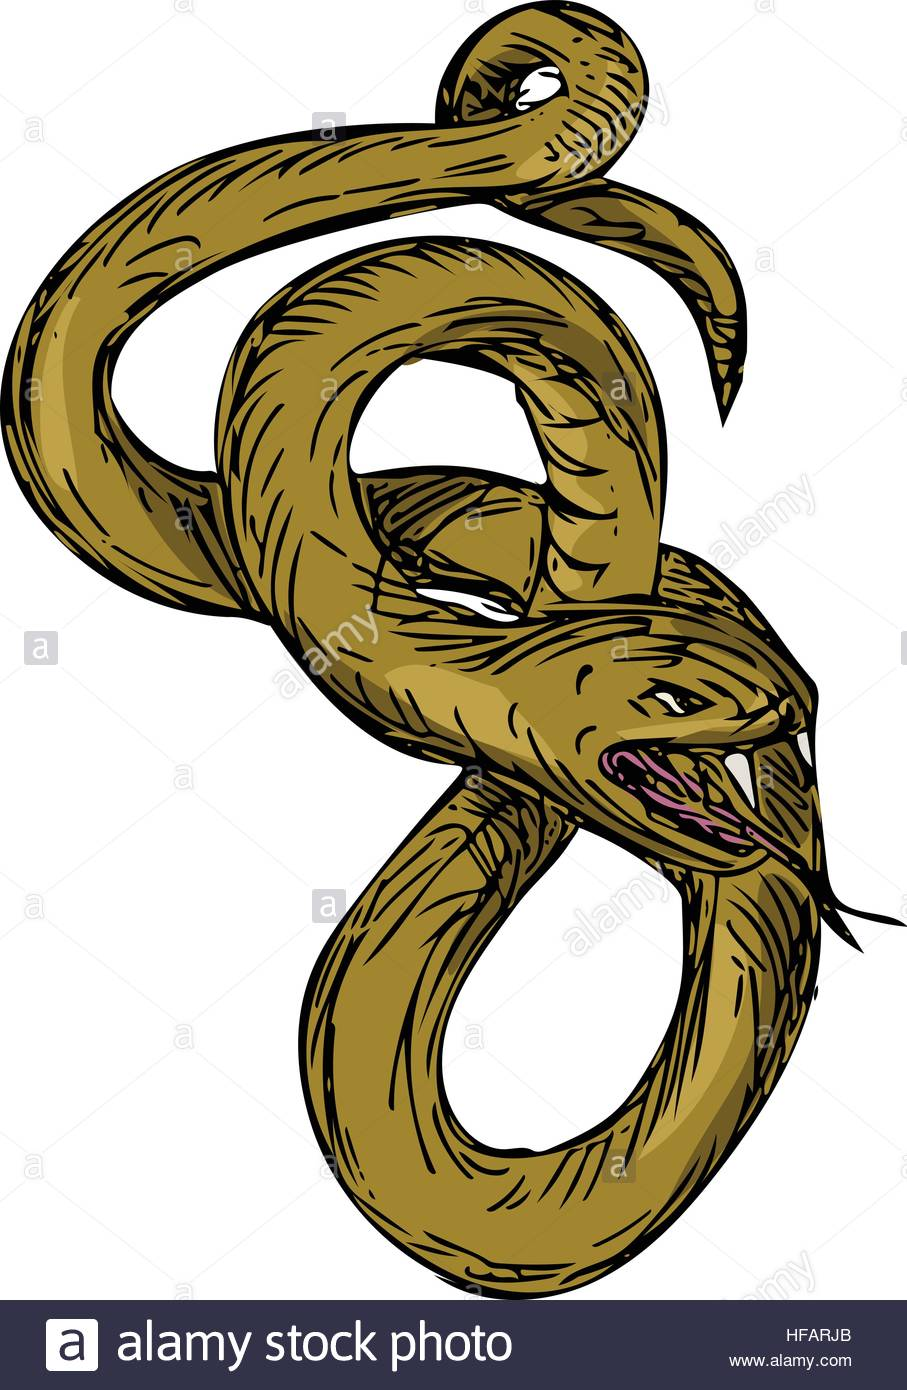 907x1390 Drawing Sketch Style Illustration Of A Viper Snake Coiling Up